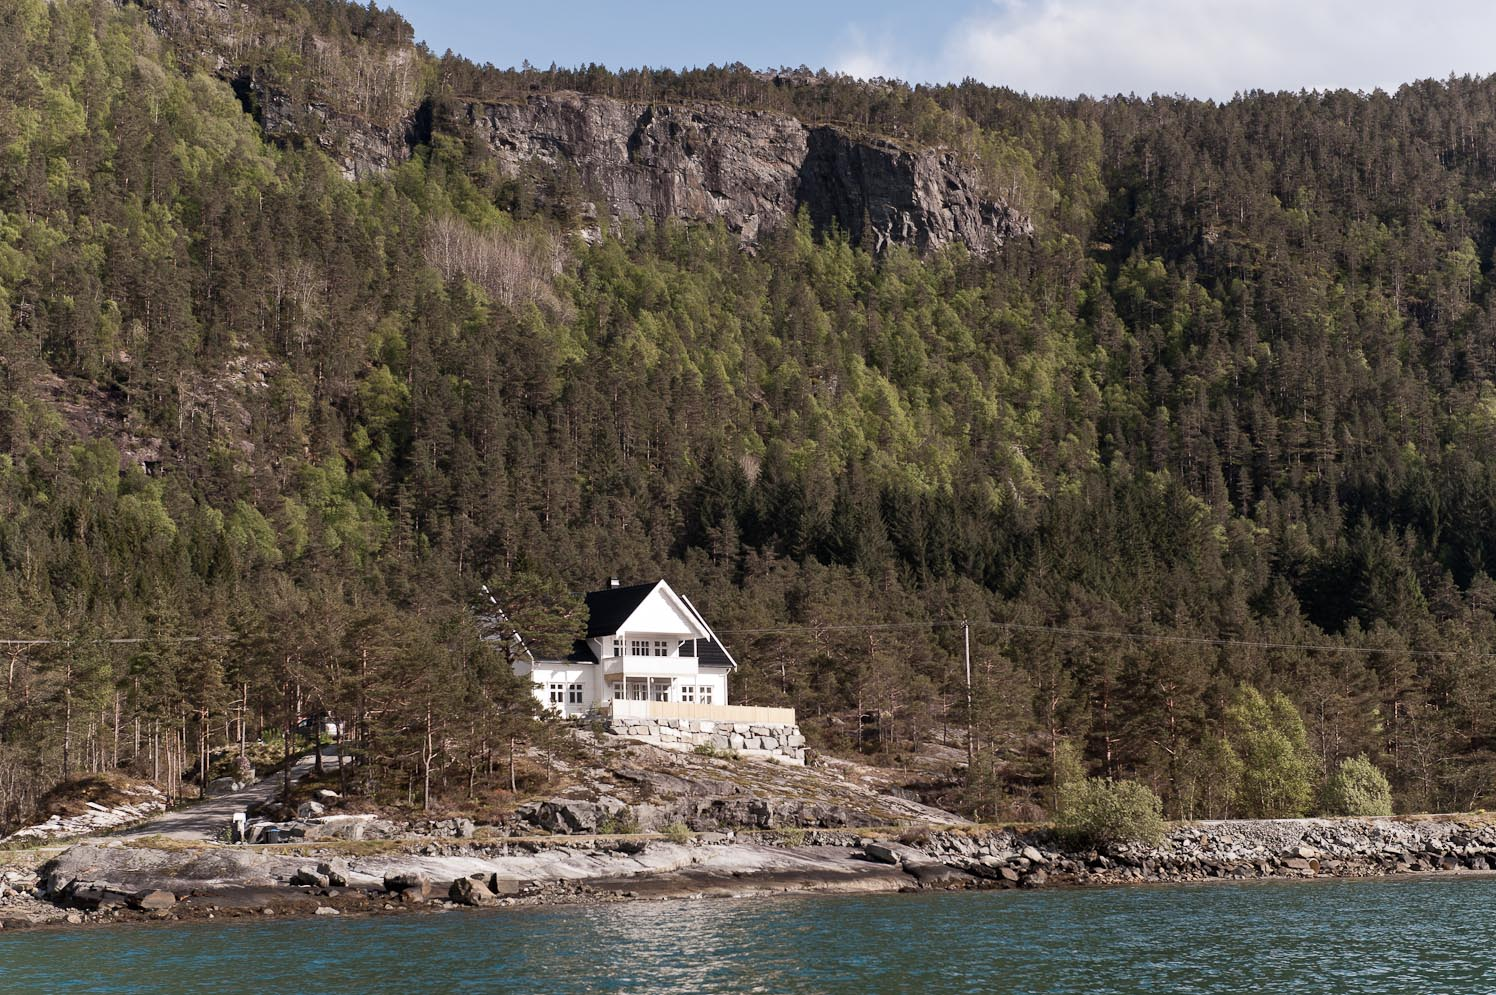 Interior Photography in Norway